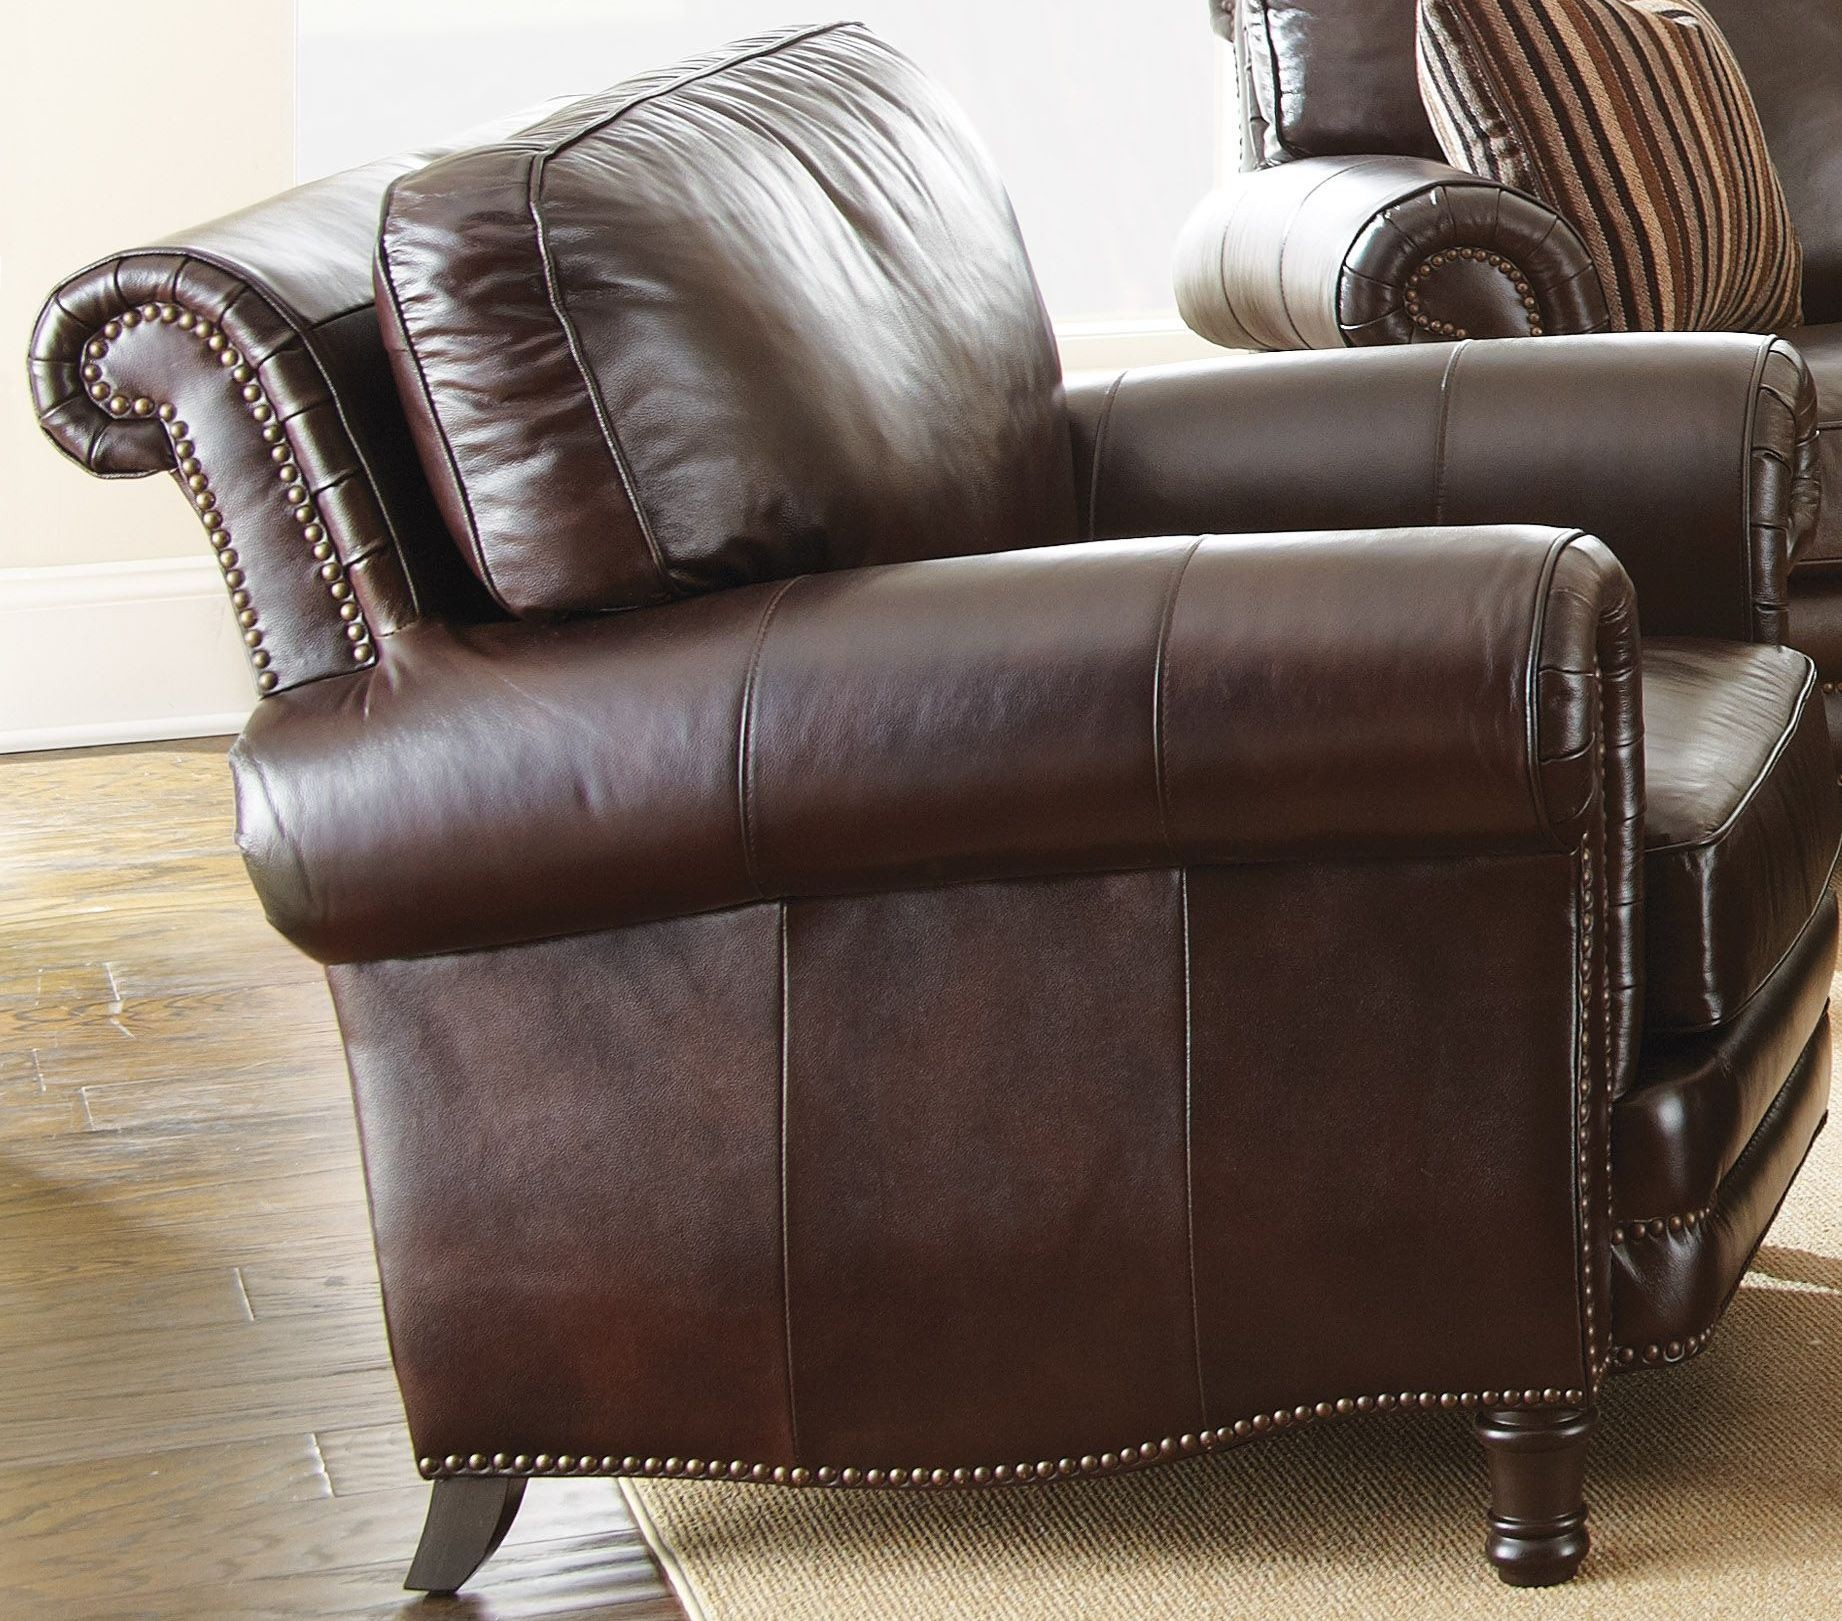 Chateau Top Grain Leather Chair from Steve Silver CH860C